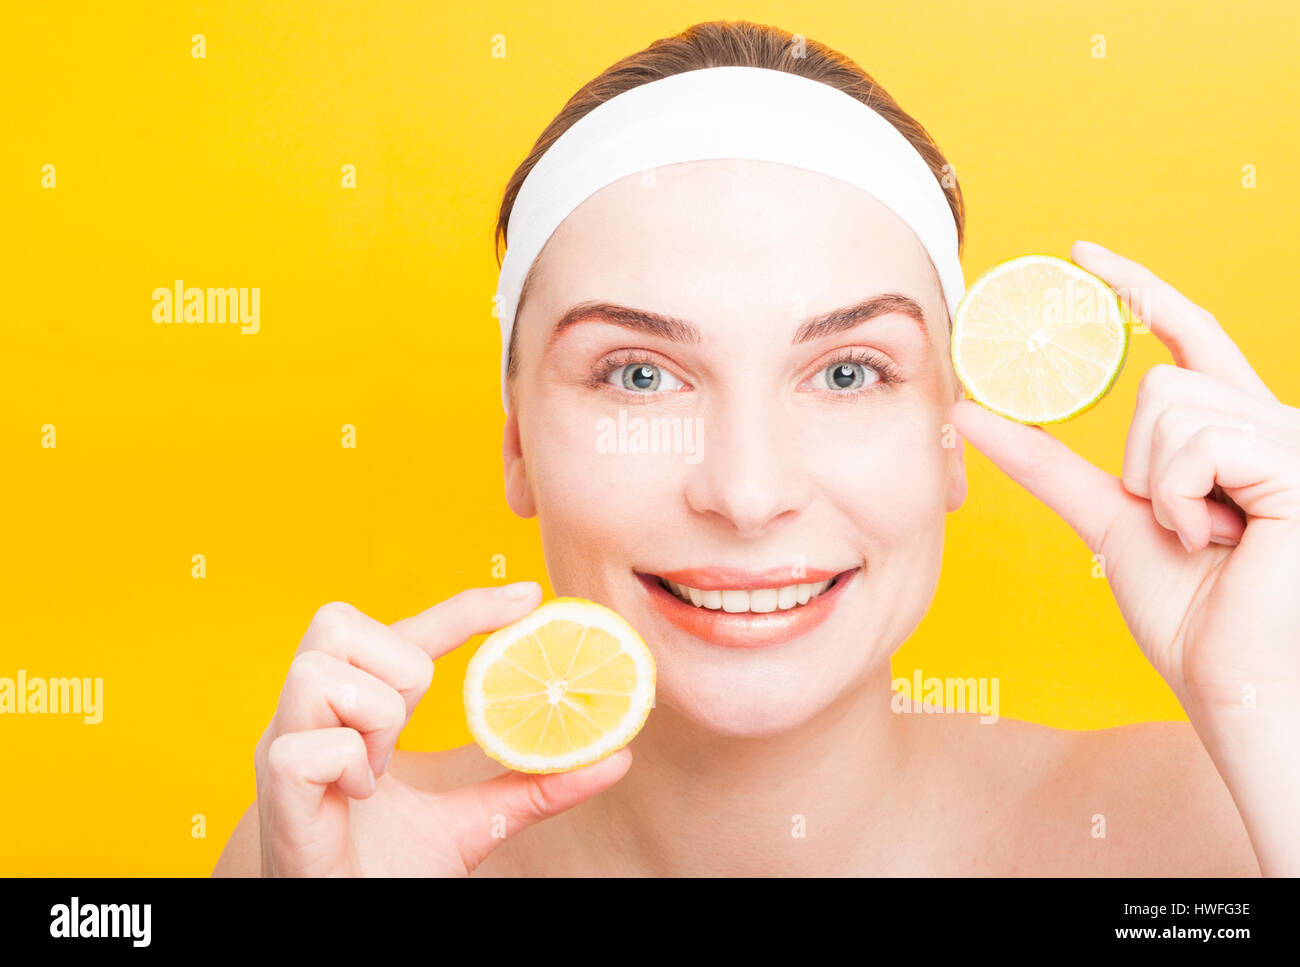 Skin care and beauty concept with joyful woman showing slices of lemon and lime on yellow background - Stock Image